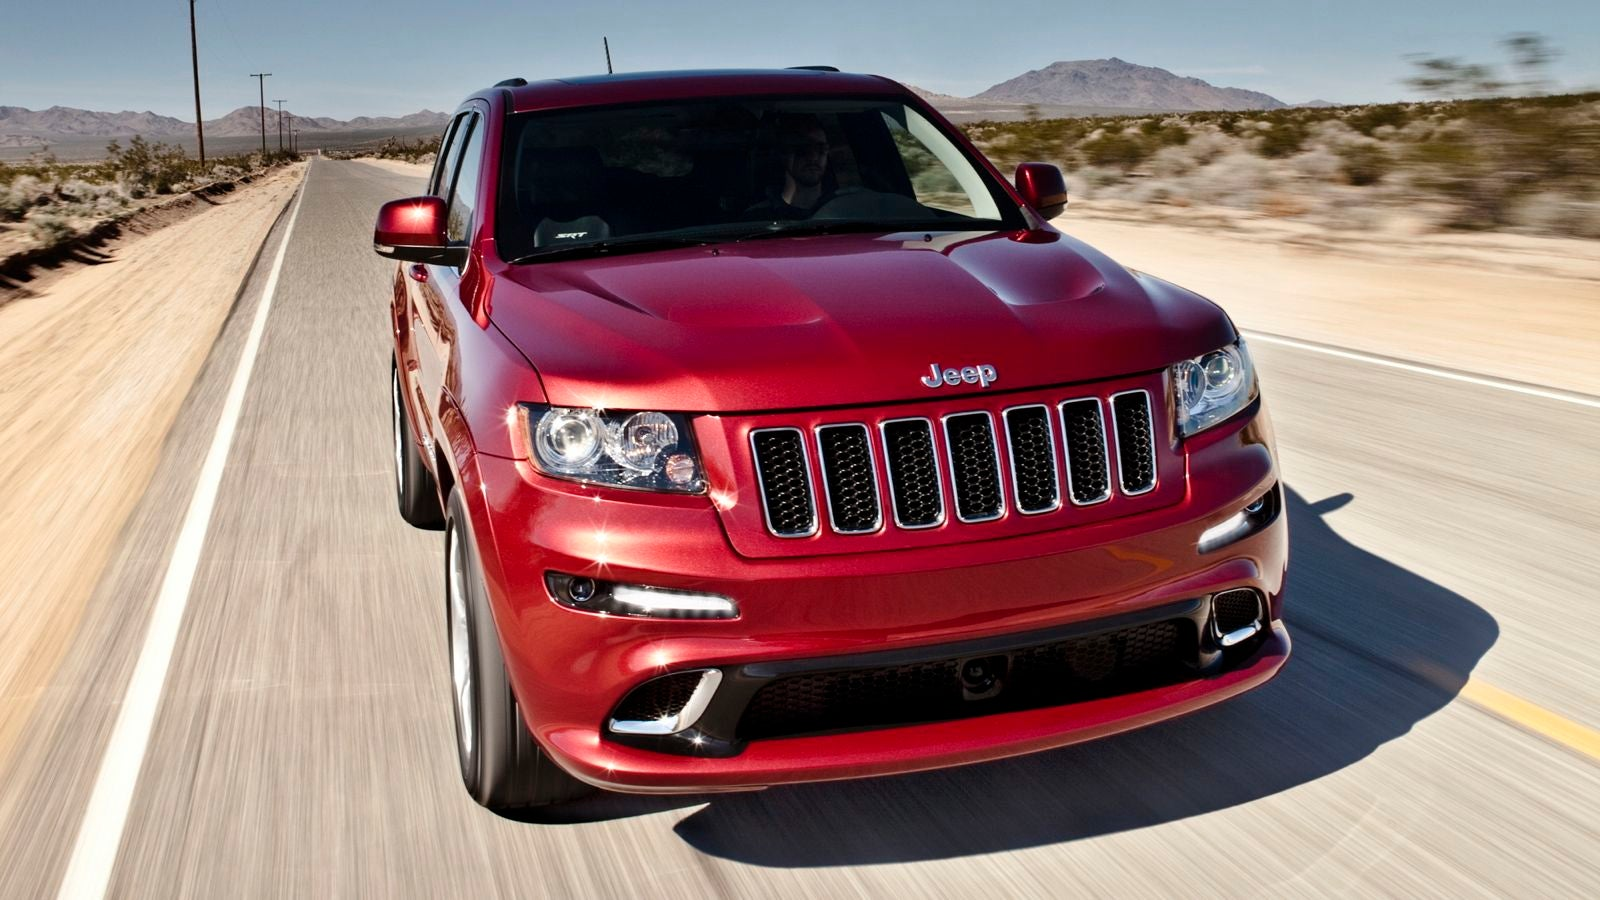 2012 jeep grand cherokee srt8 gallery. Black Bedroom Furniture Sets. Home Design Ideas